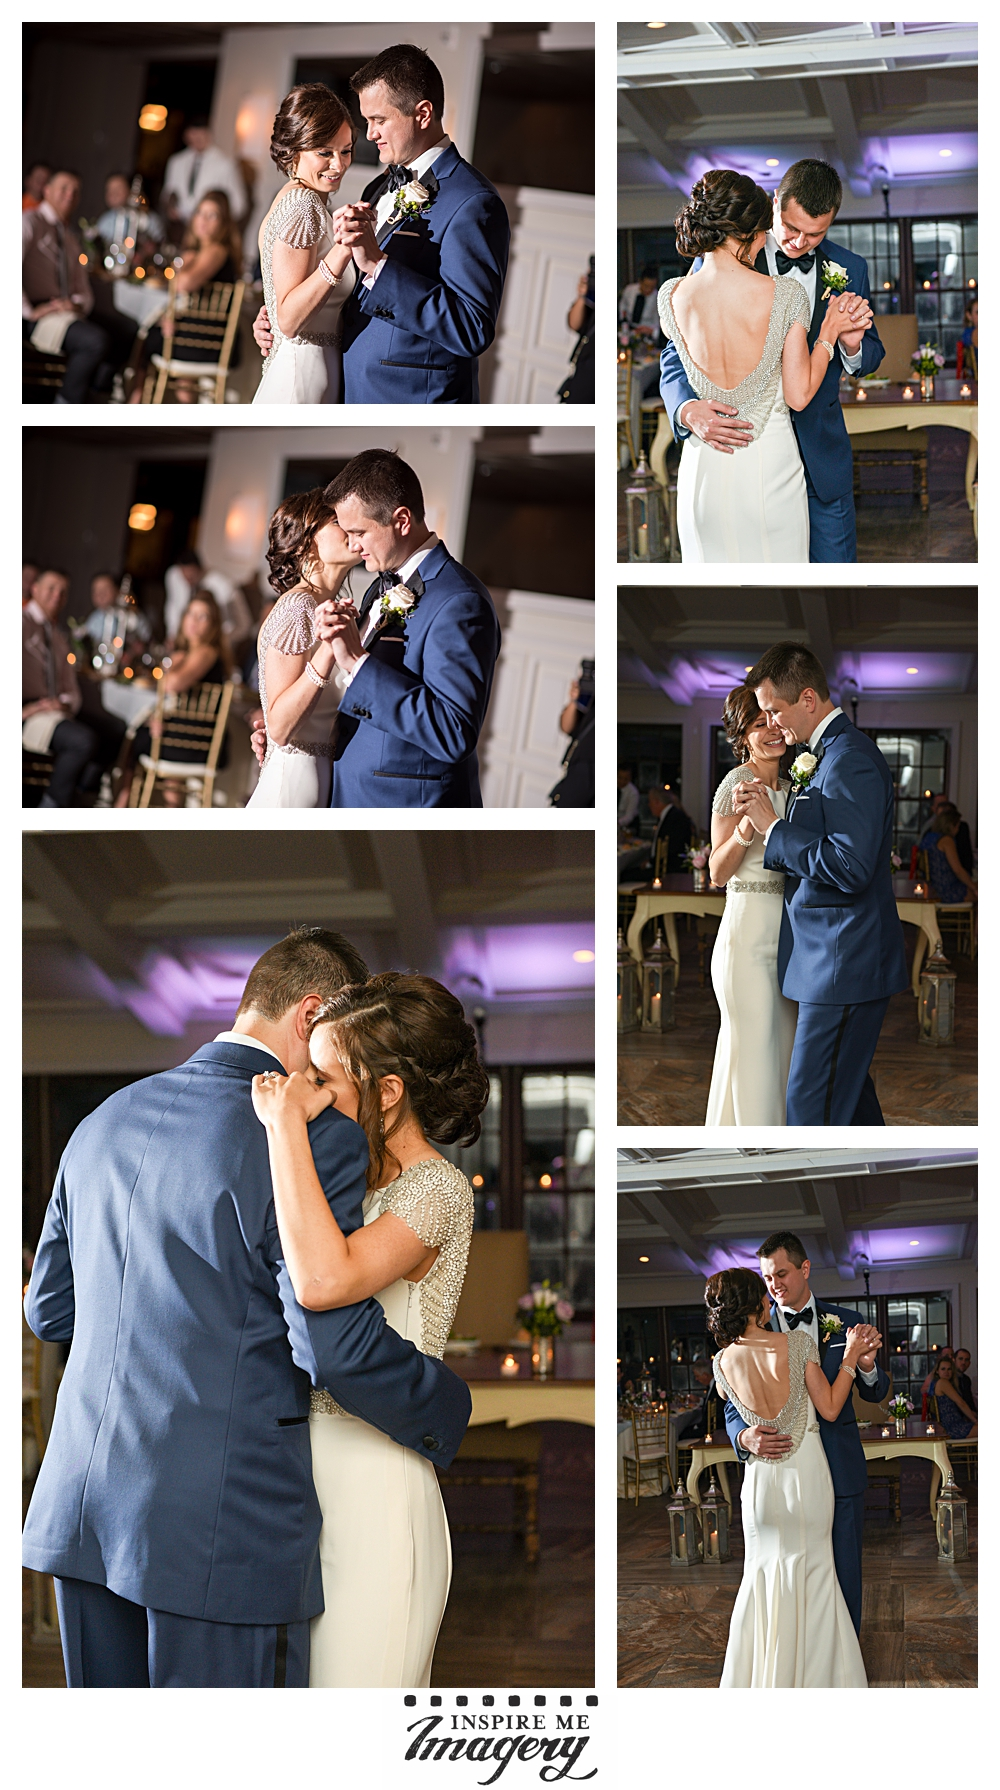 The first dance between the bride and groom. What else can you say?